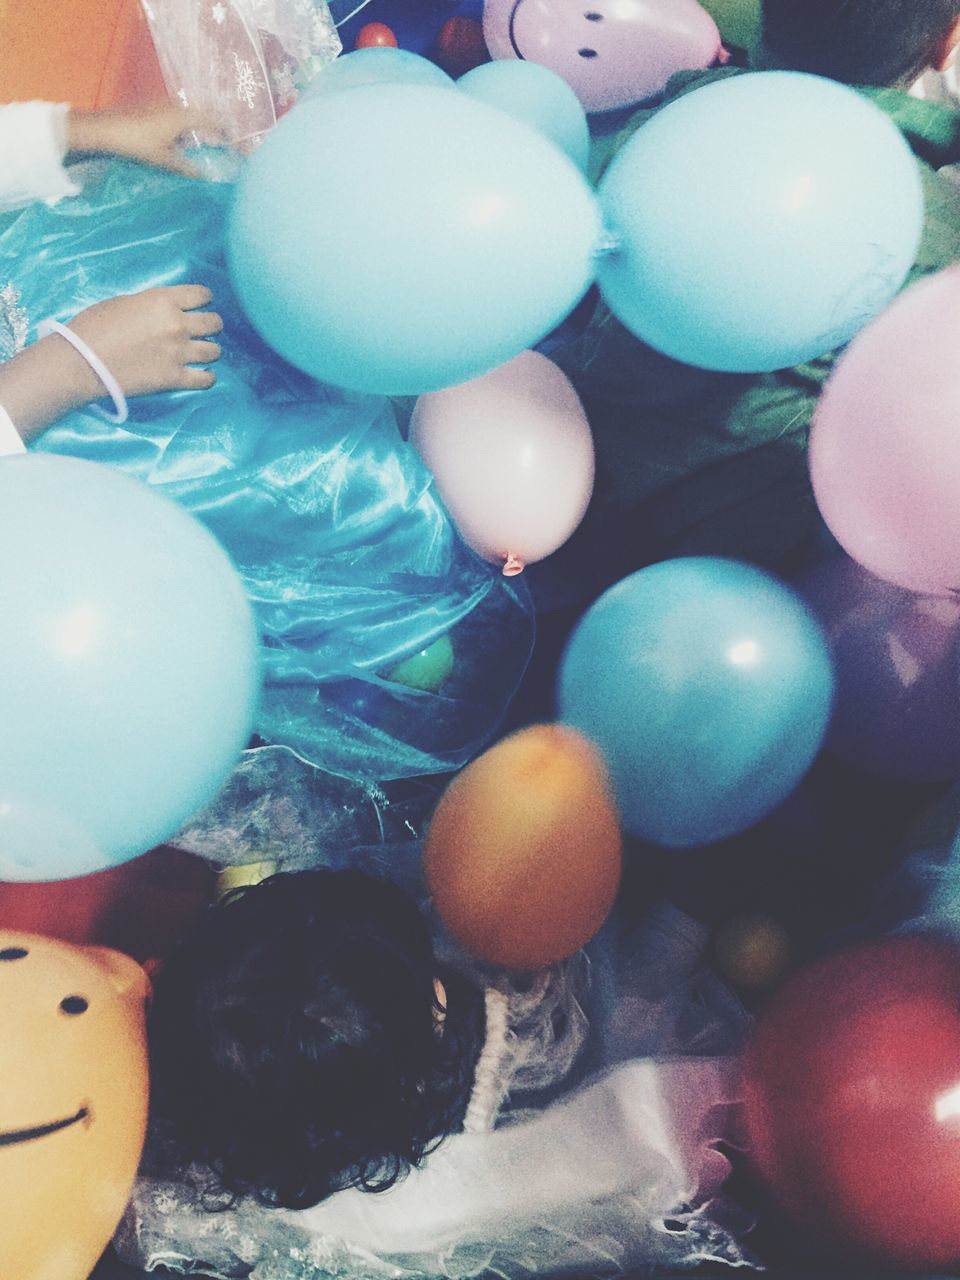 celebration, multi colored, egg, indoors, balloon, human body part, real people, one person, easter, food, large group of objects, human hand, day, close-up, people